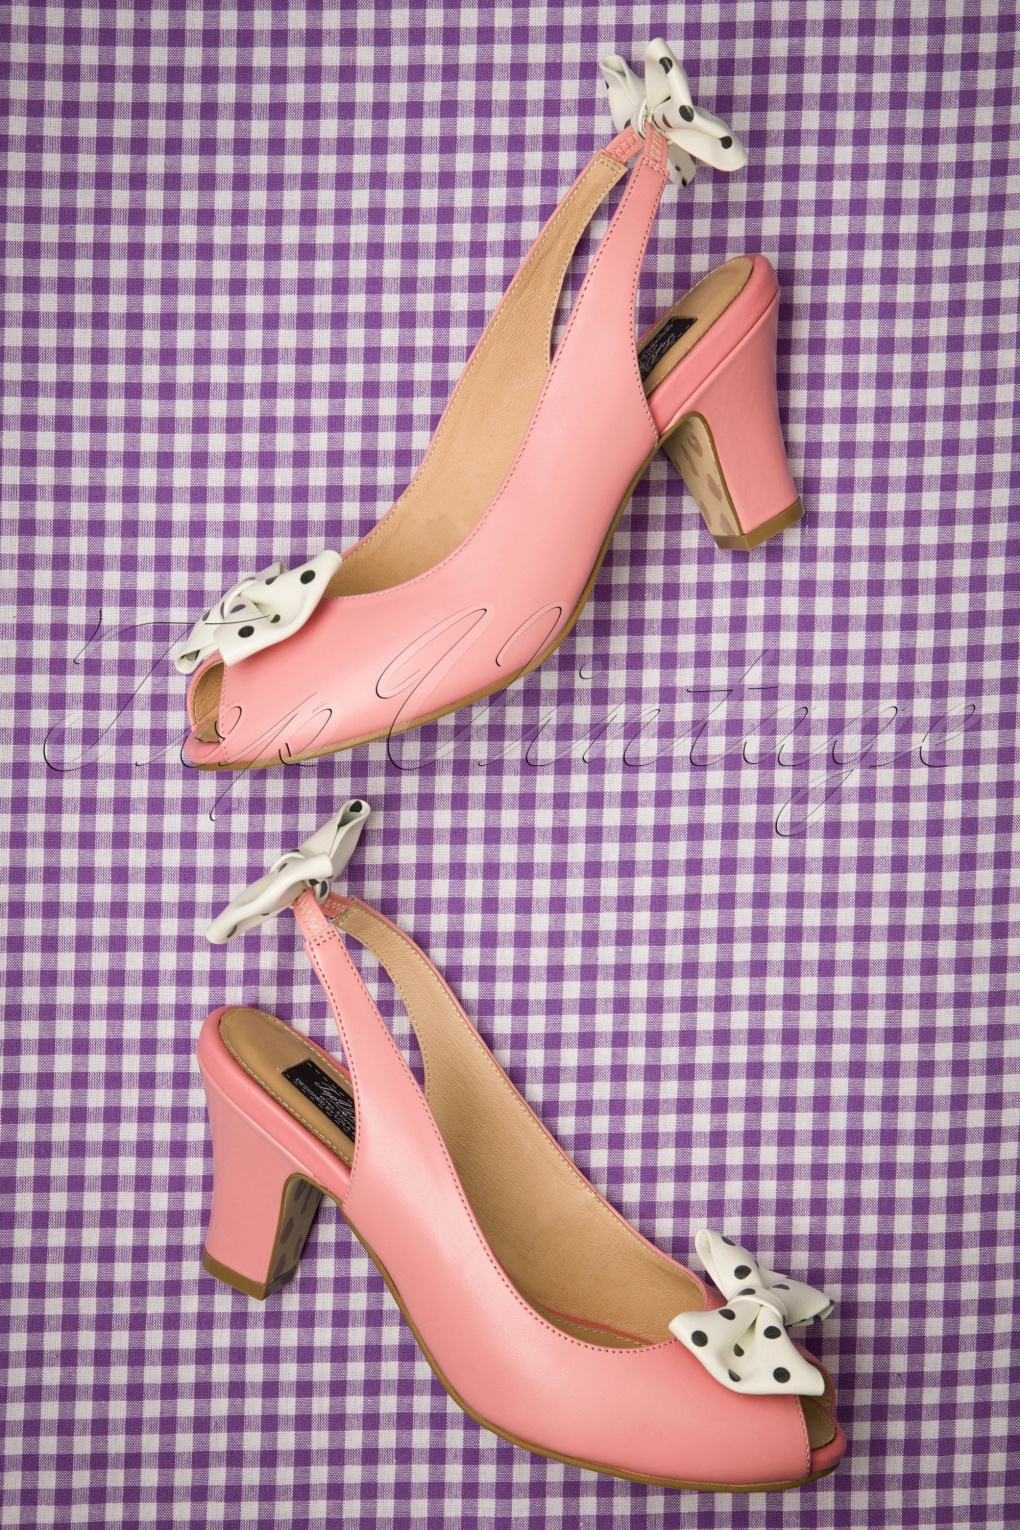 1950s Style Shoes | Heels, Flats, Saddle Shoes 50s Ava Carina Bow Sandalettes in Pink £84.68 AT vintagedancer.com